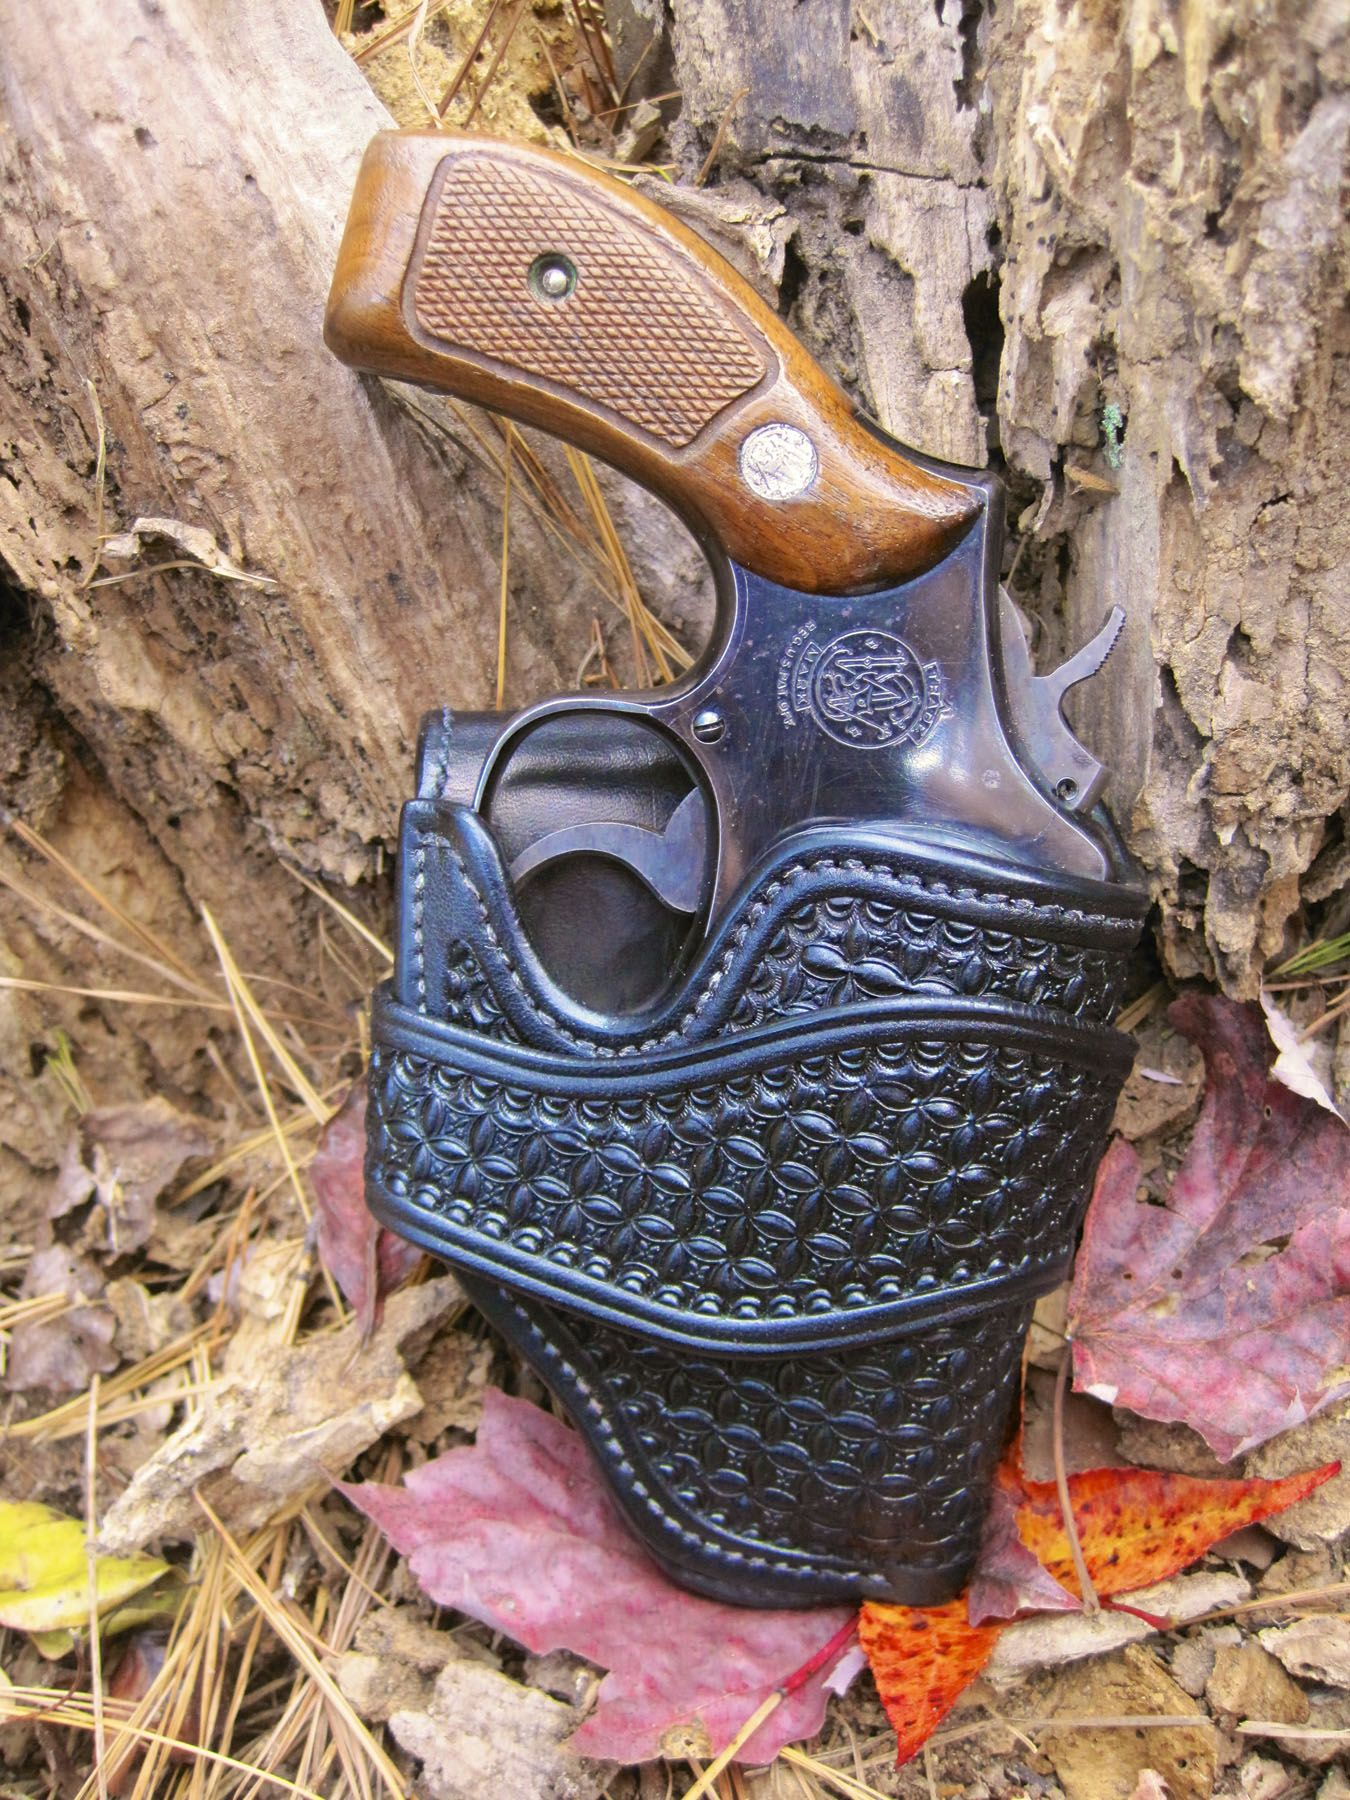 Pin on Guns, Holsters and Hunters